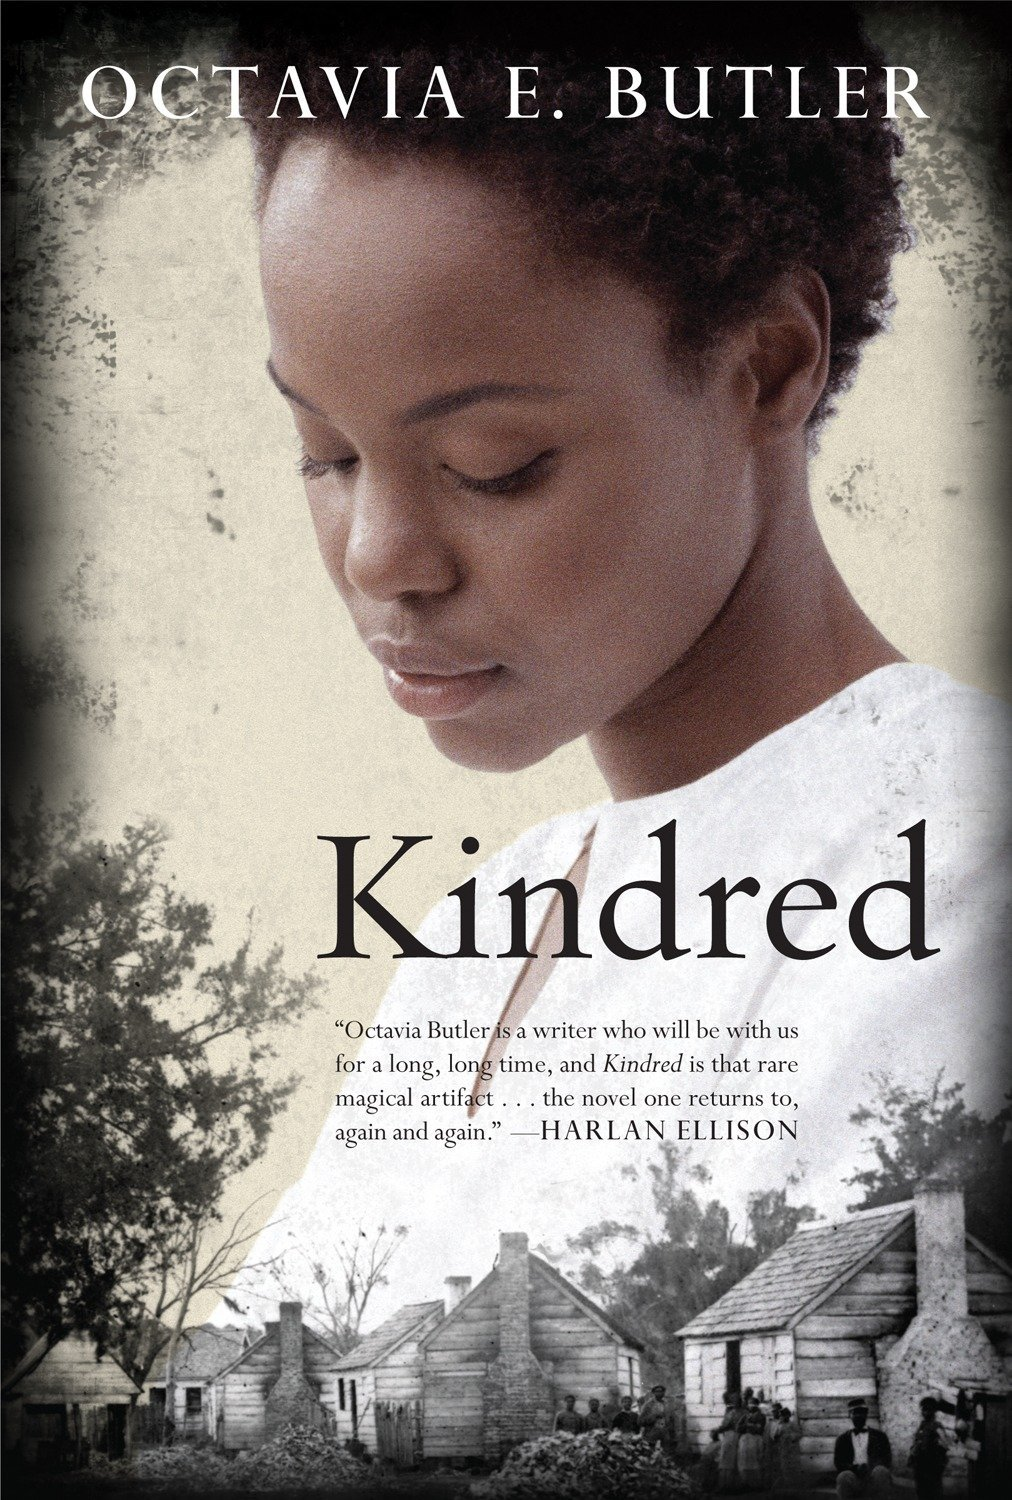 Amazon.com: Kindred (0046442083690): Octavia E. Butler: Books